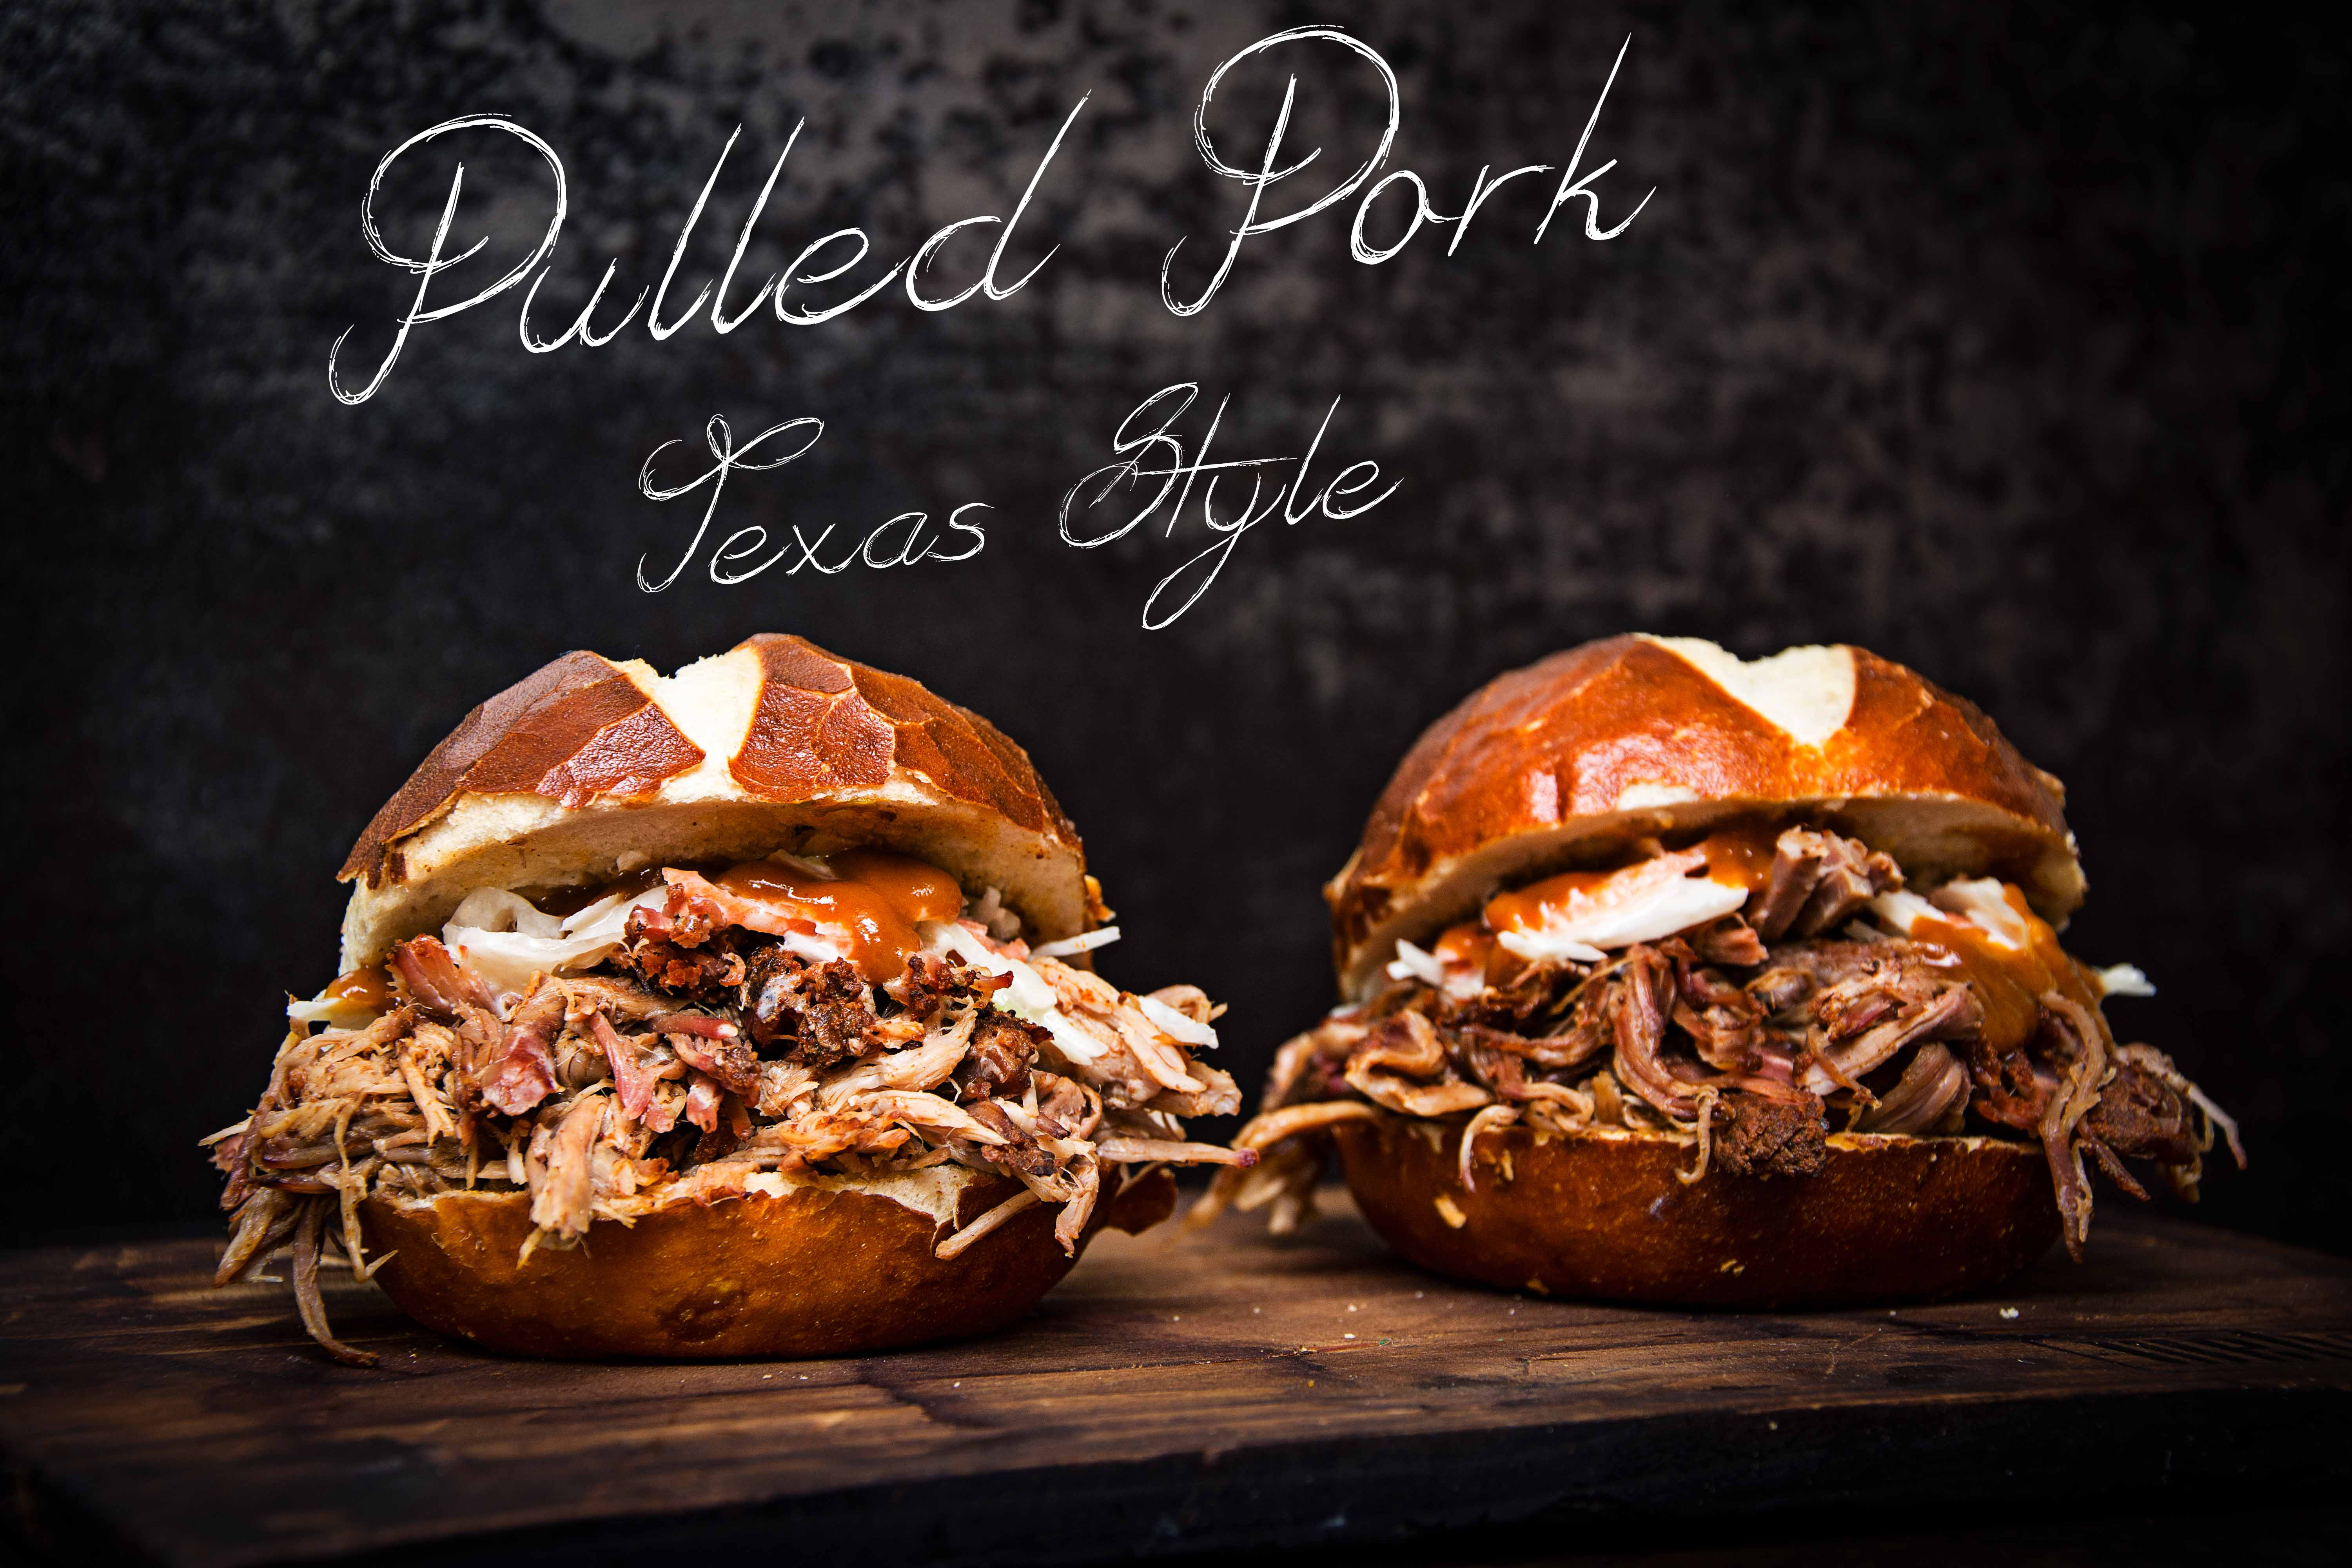 Pulled Pork Zubereitung Gasgrill : Pulled pork texas style│grill & bbq blog│pulled pork in 6 stunden